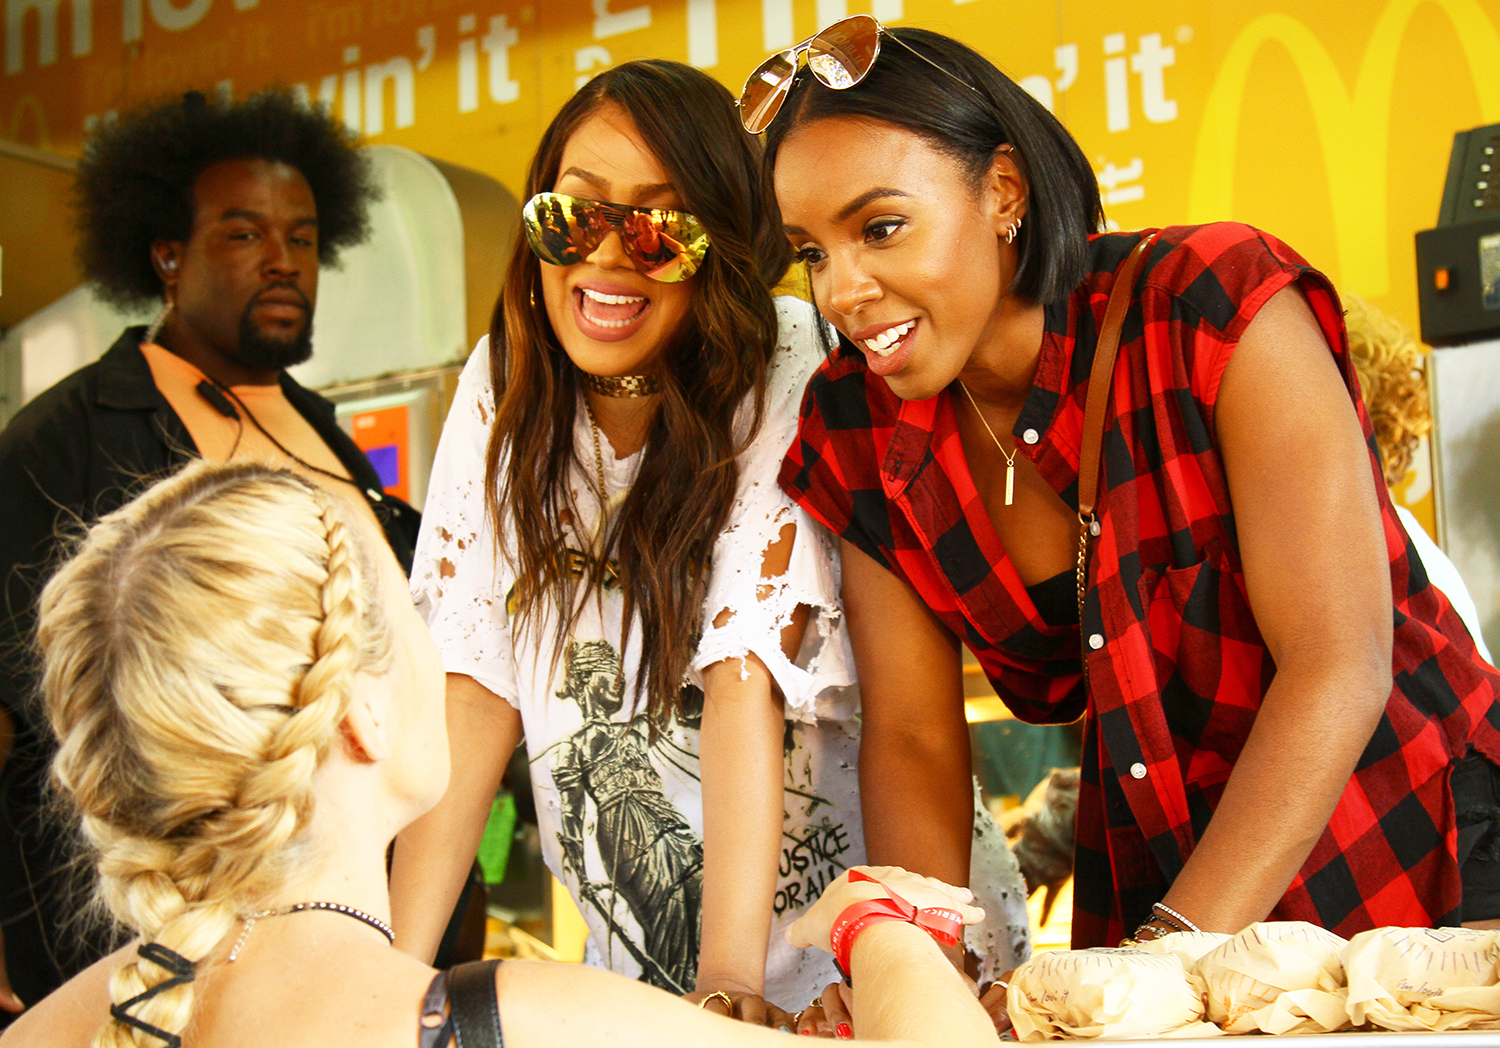 La La Anthony and Kelly Rowland serving McDonald's in Philadelphia.